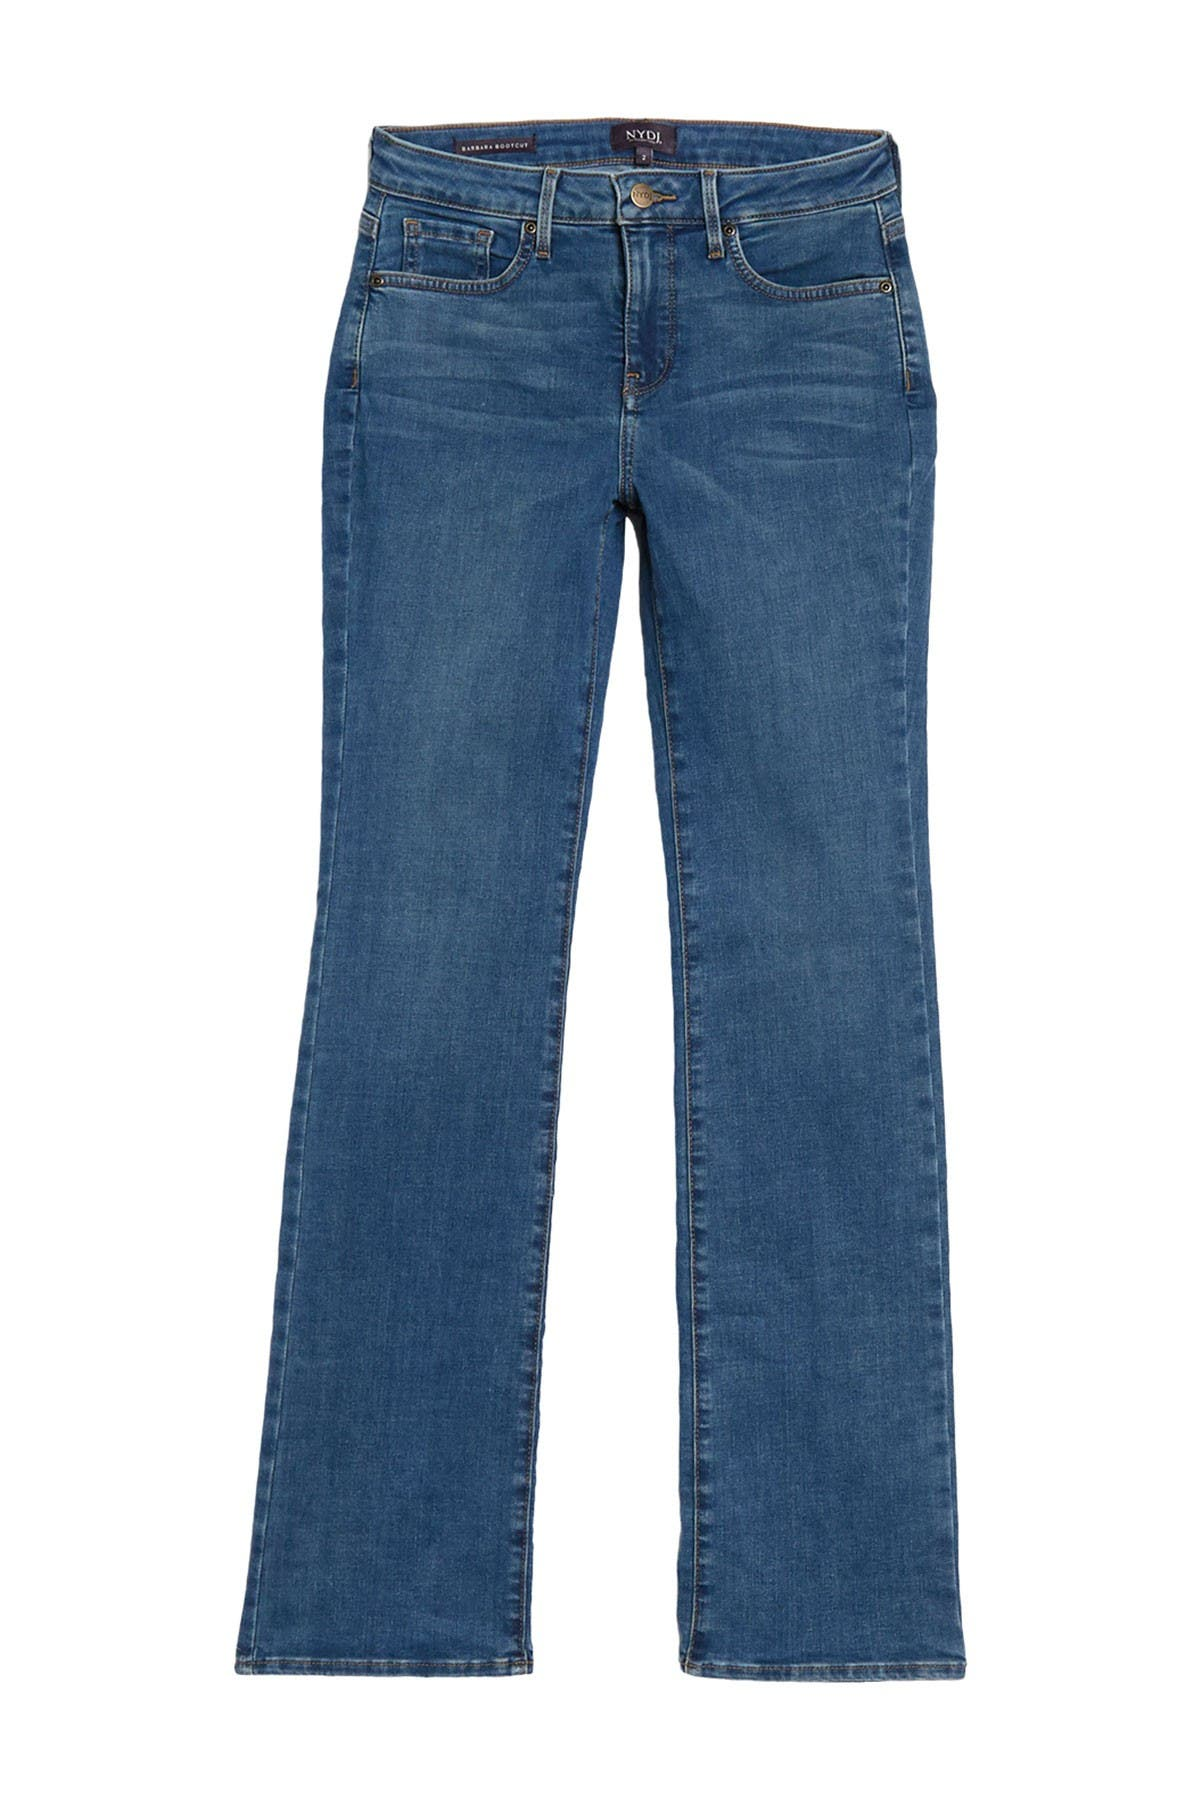 Image of NYDJ Barbara Bootcut Jeans